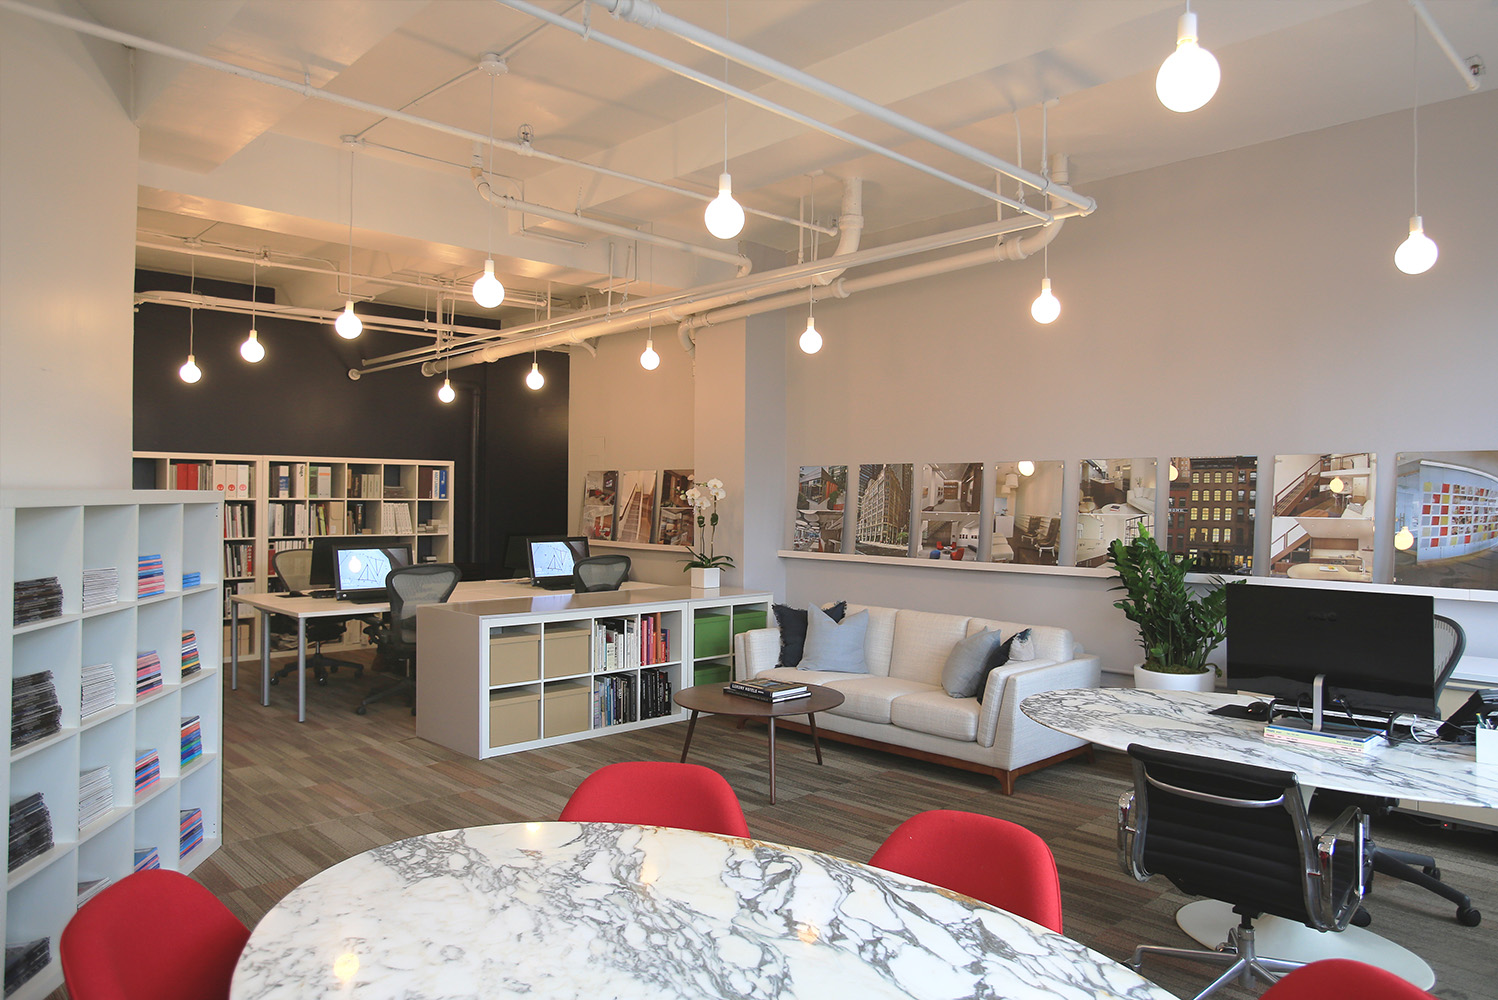 Architecture and design firm Navigate Design opened its first office in the US in Chelsea in New York City.